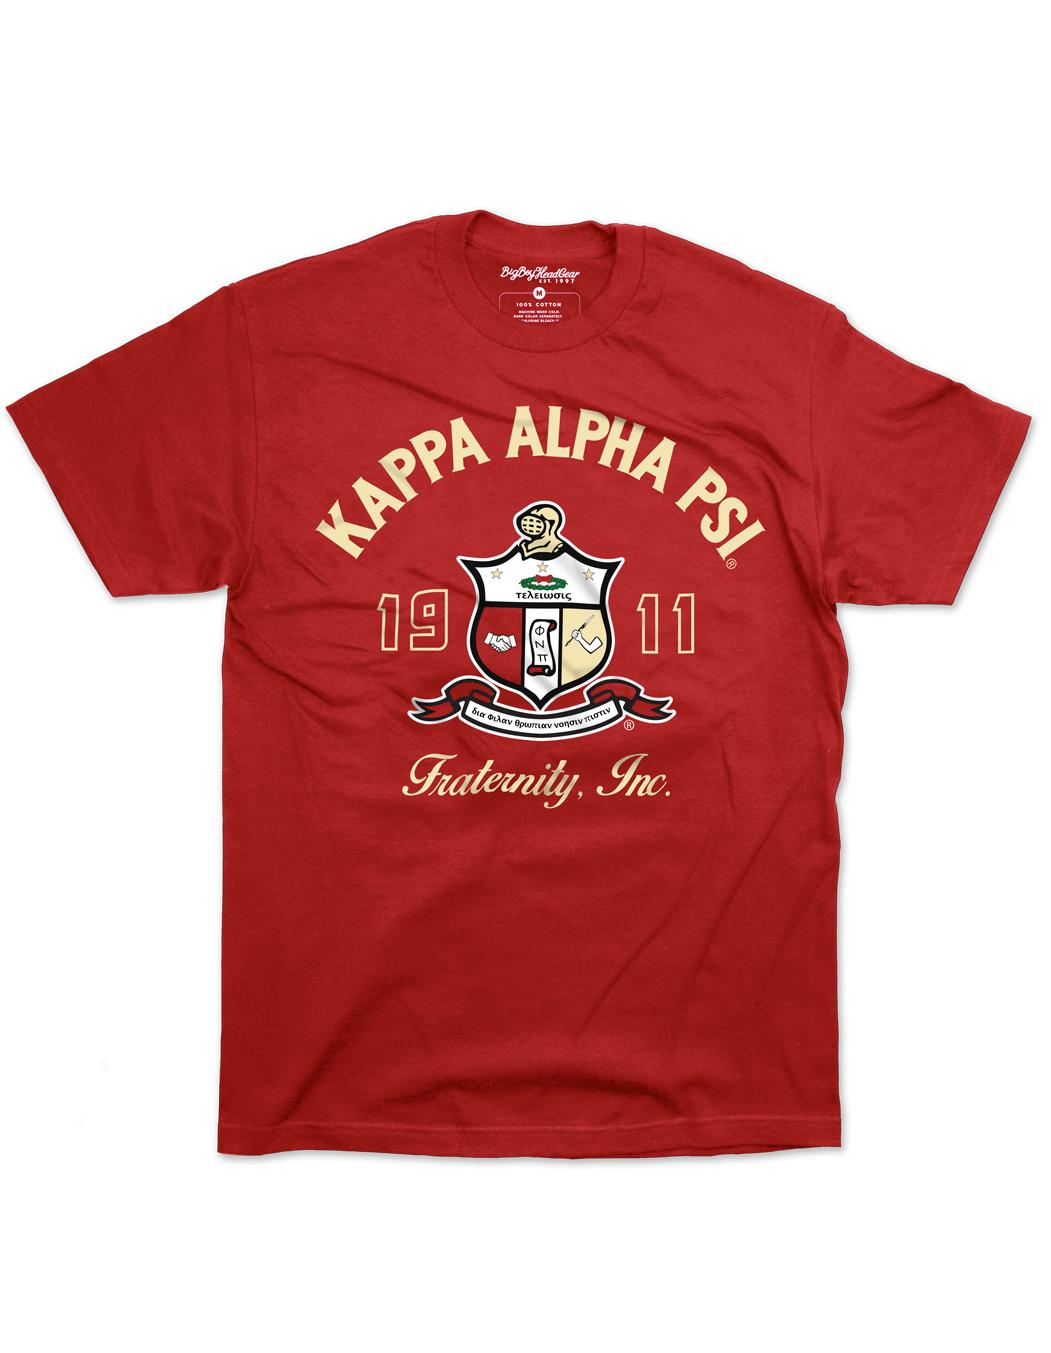 Kappa Alpha Psi apparel - Graphic T Shirt